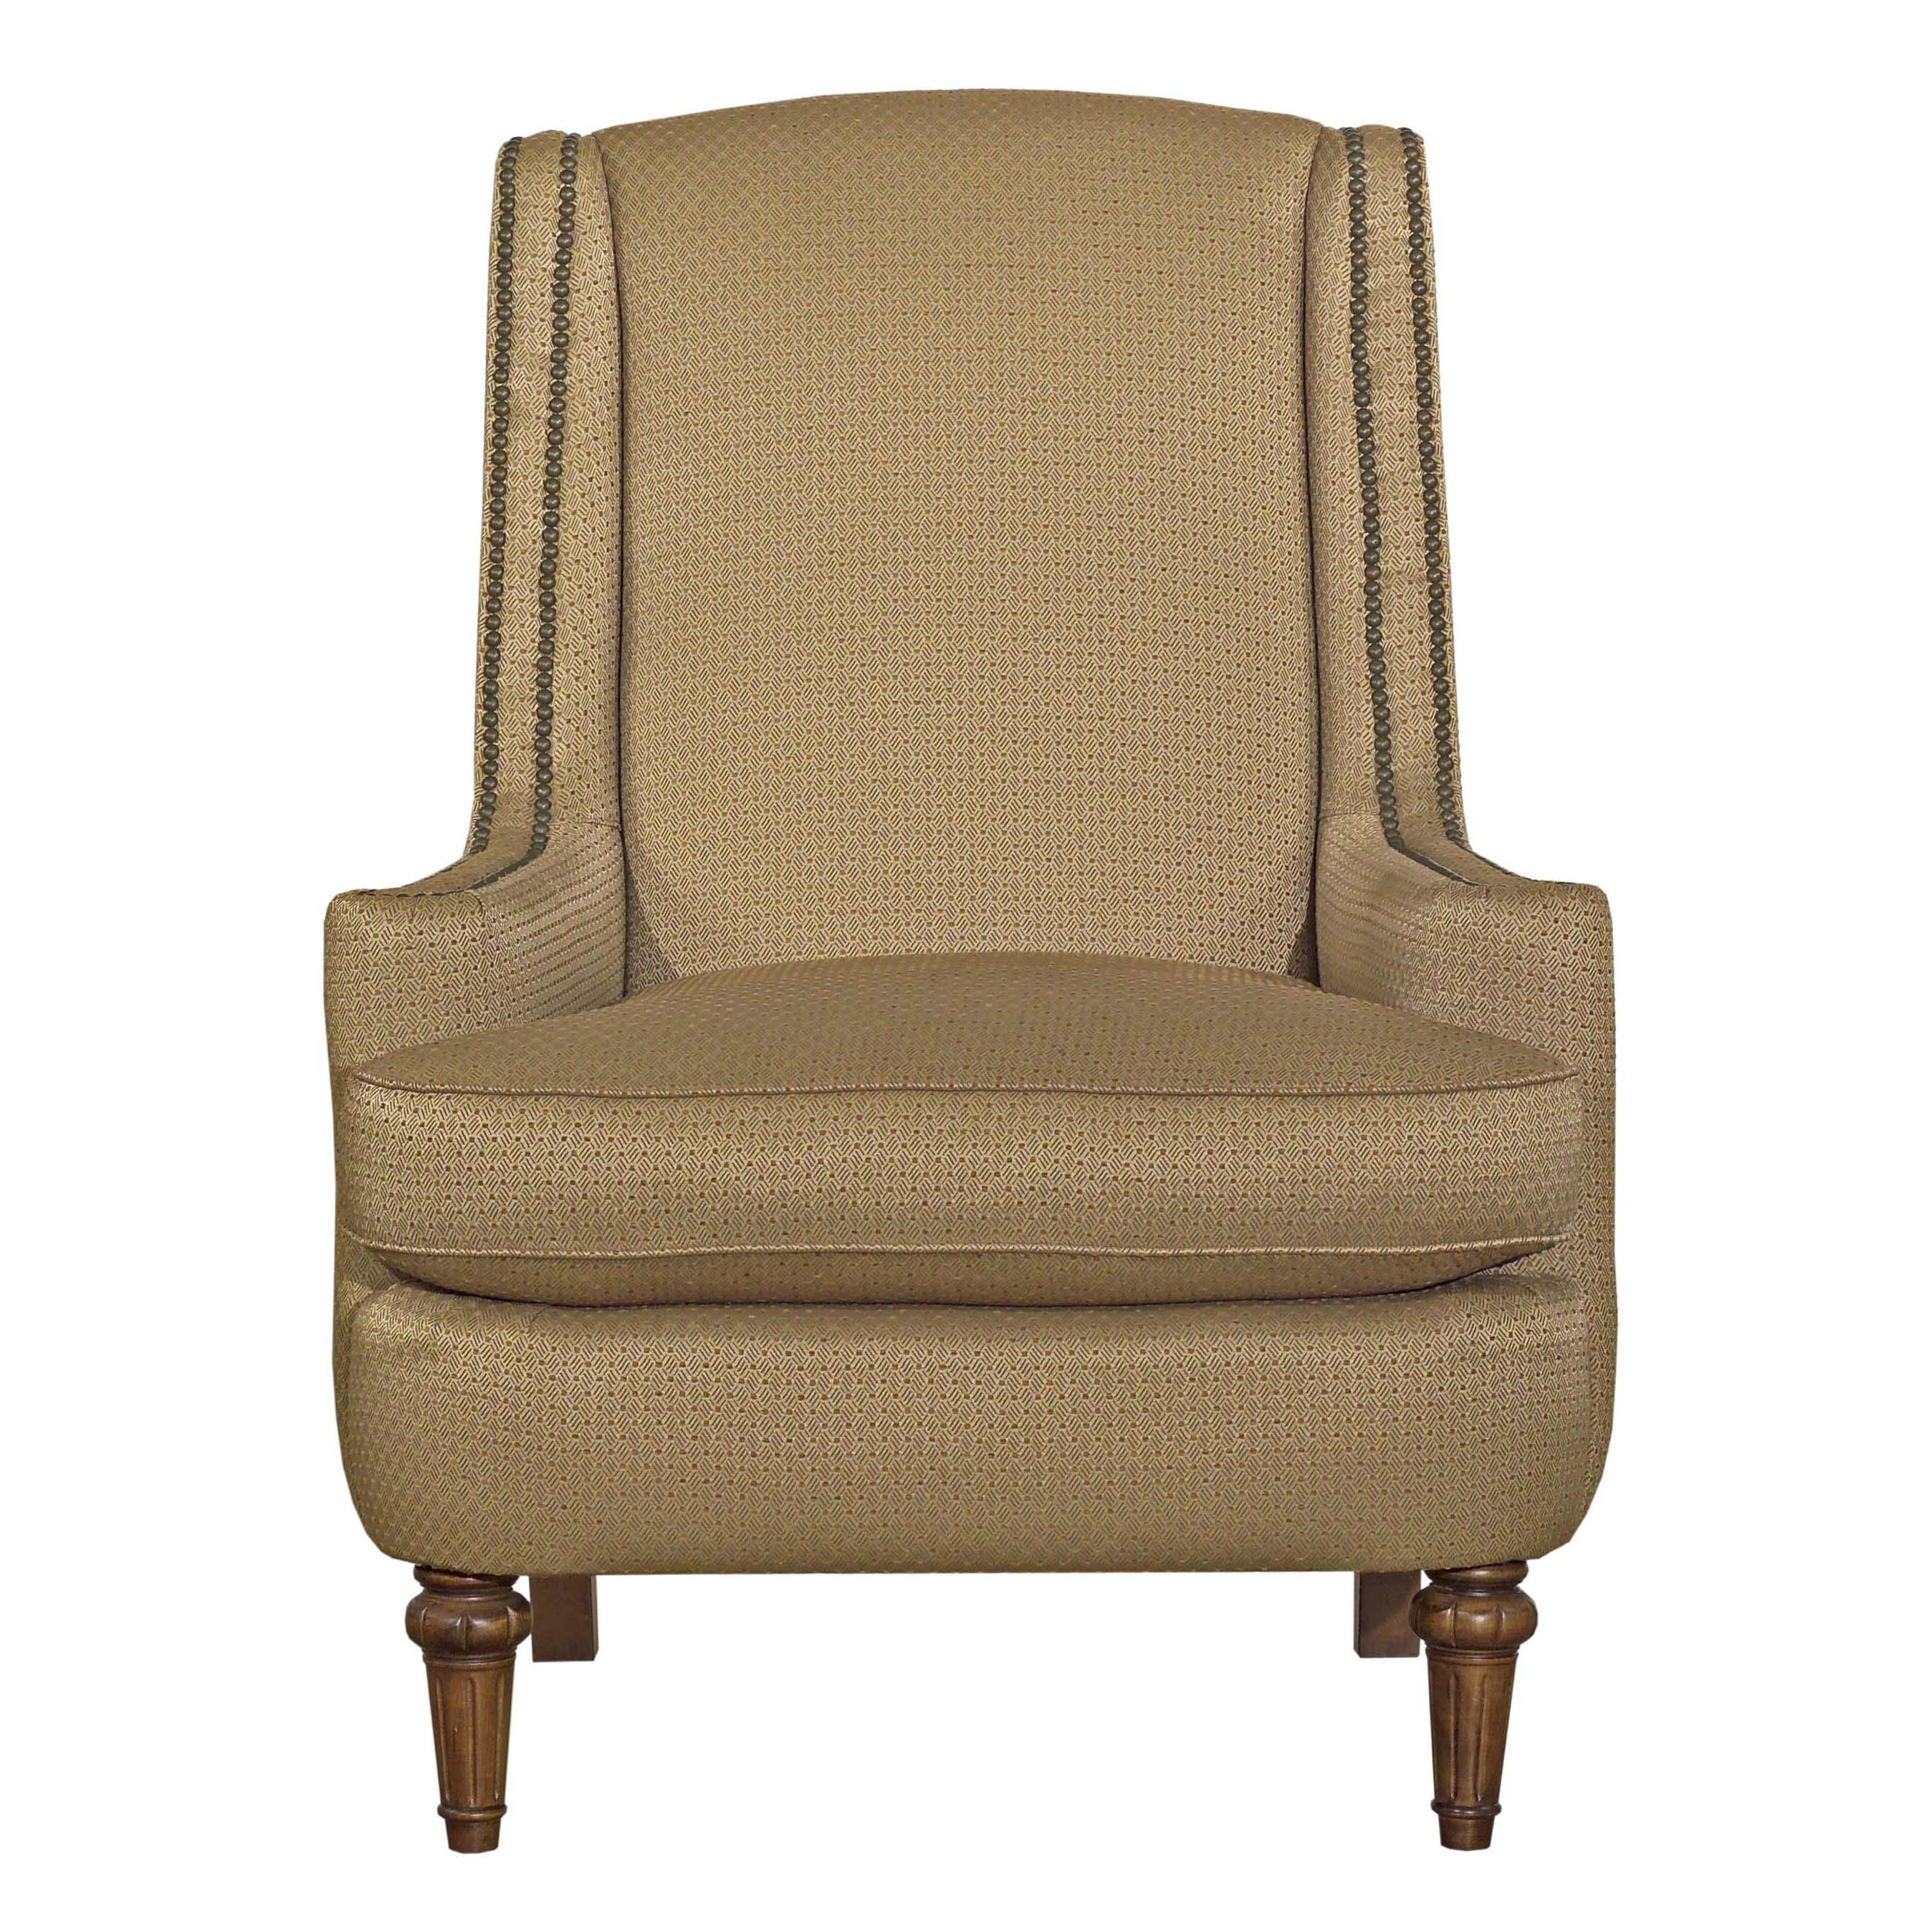 upholstered chair with nailhead trim carlisle dining accent chairs